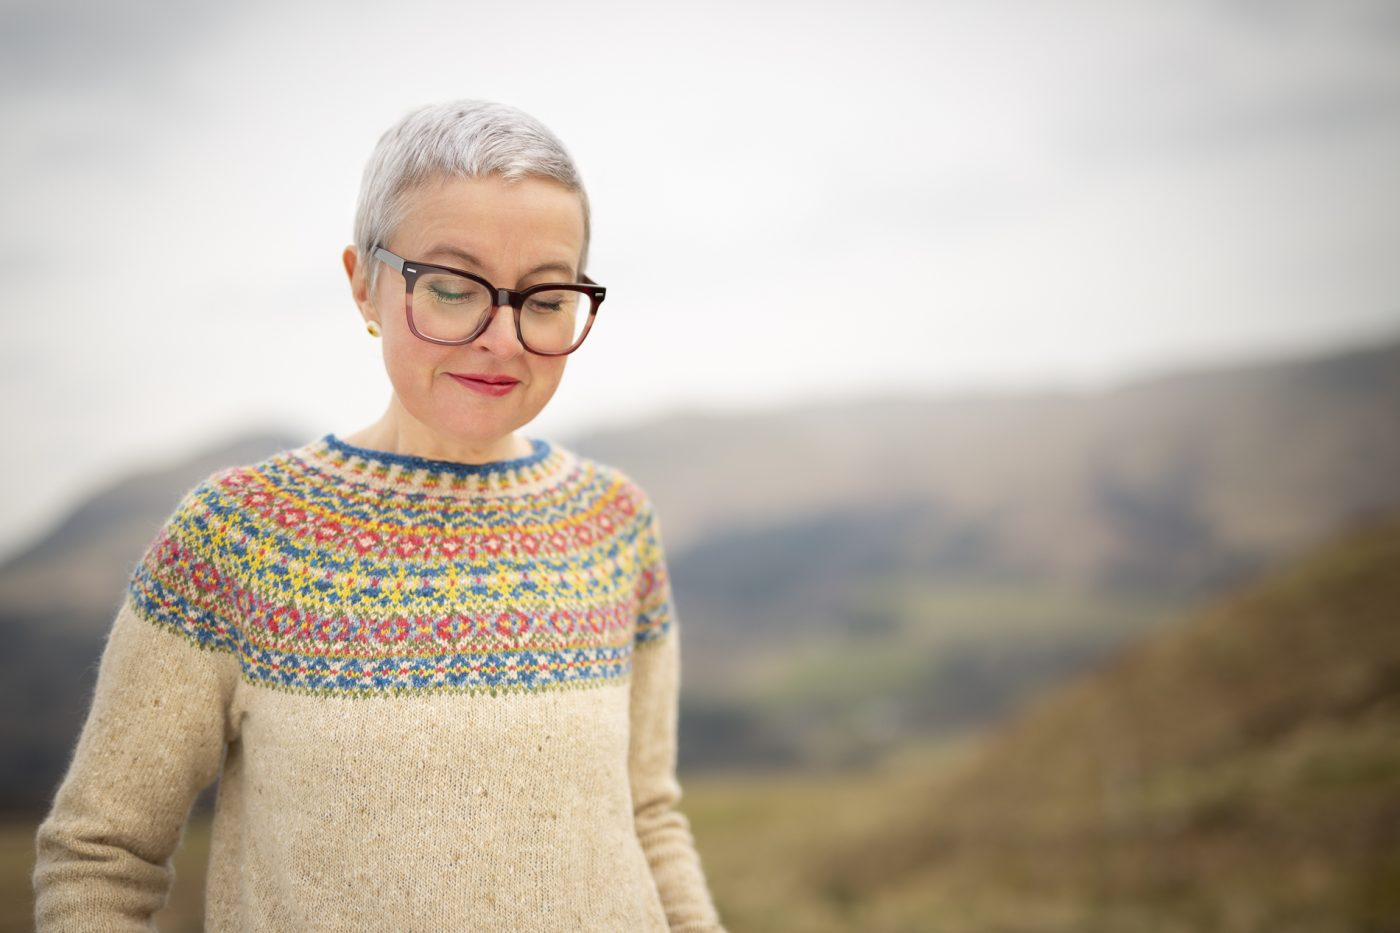 Female wearing glasses and a cream hand knitted jumper with a blue, red and yellow patterned yoke standing in the hills